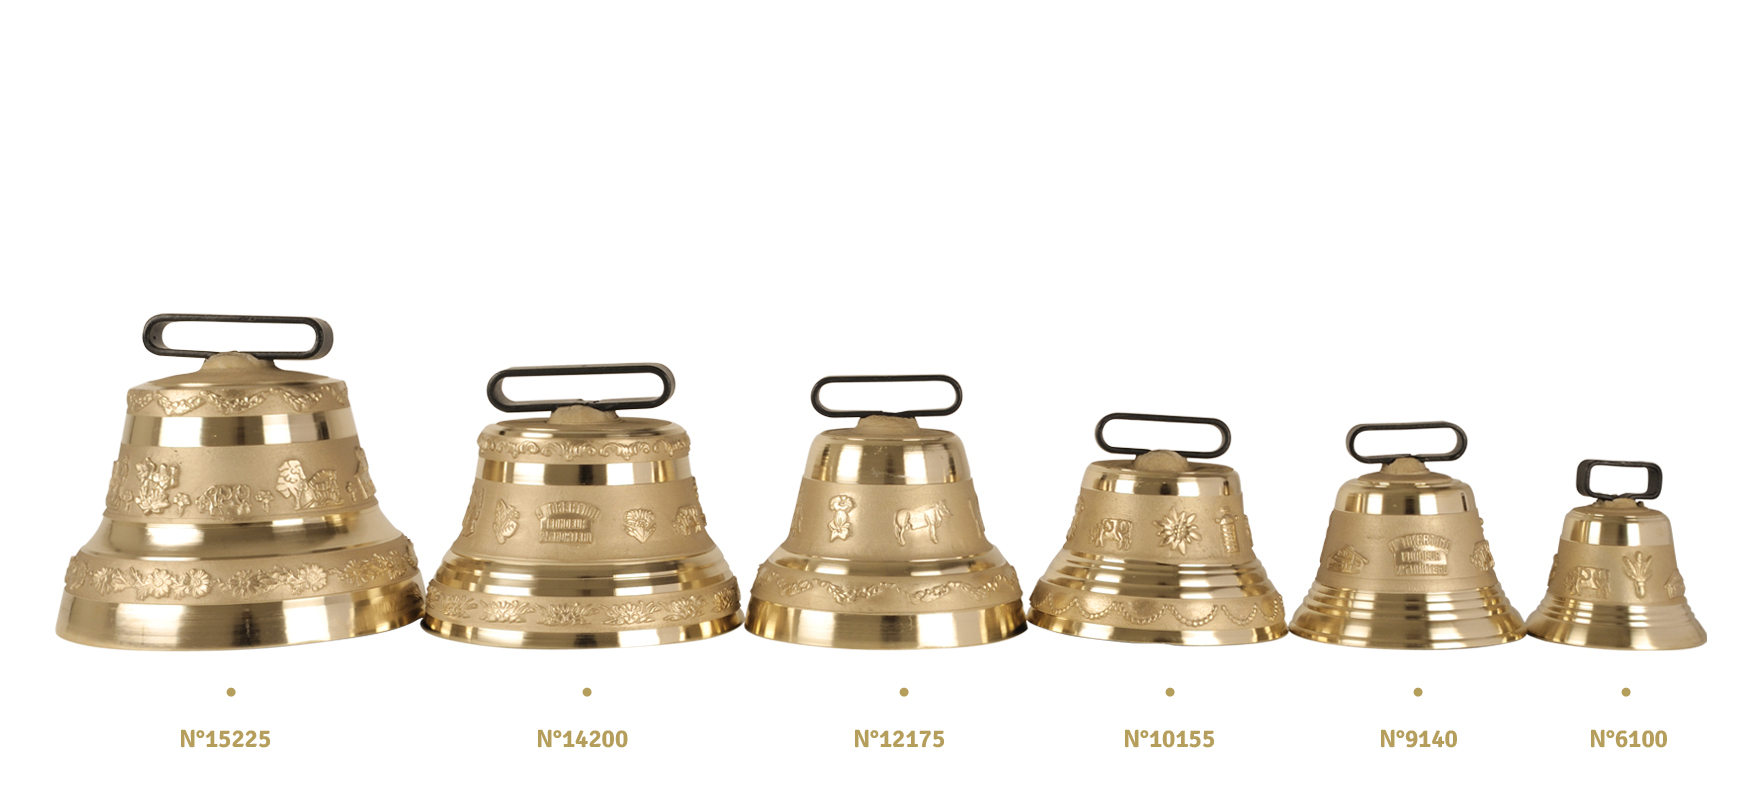 Cow-bell with buckle